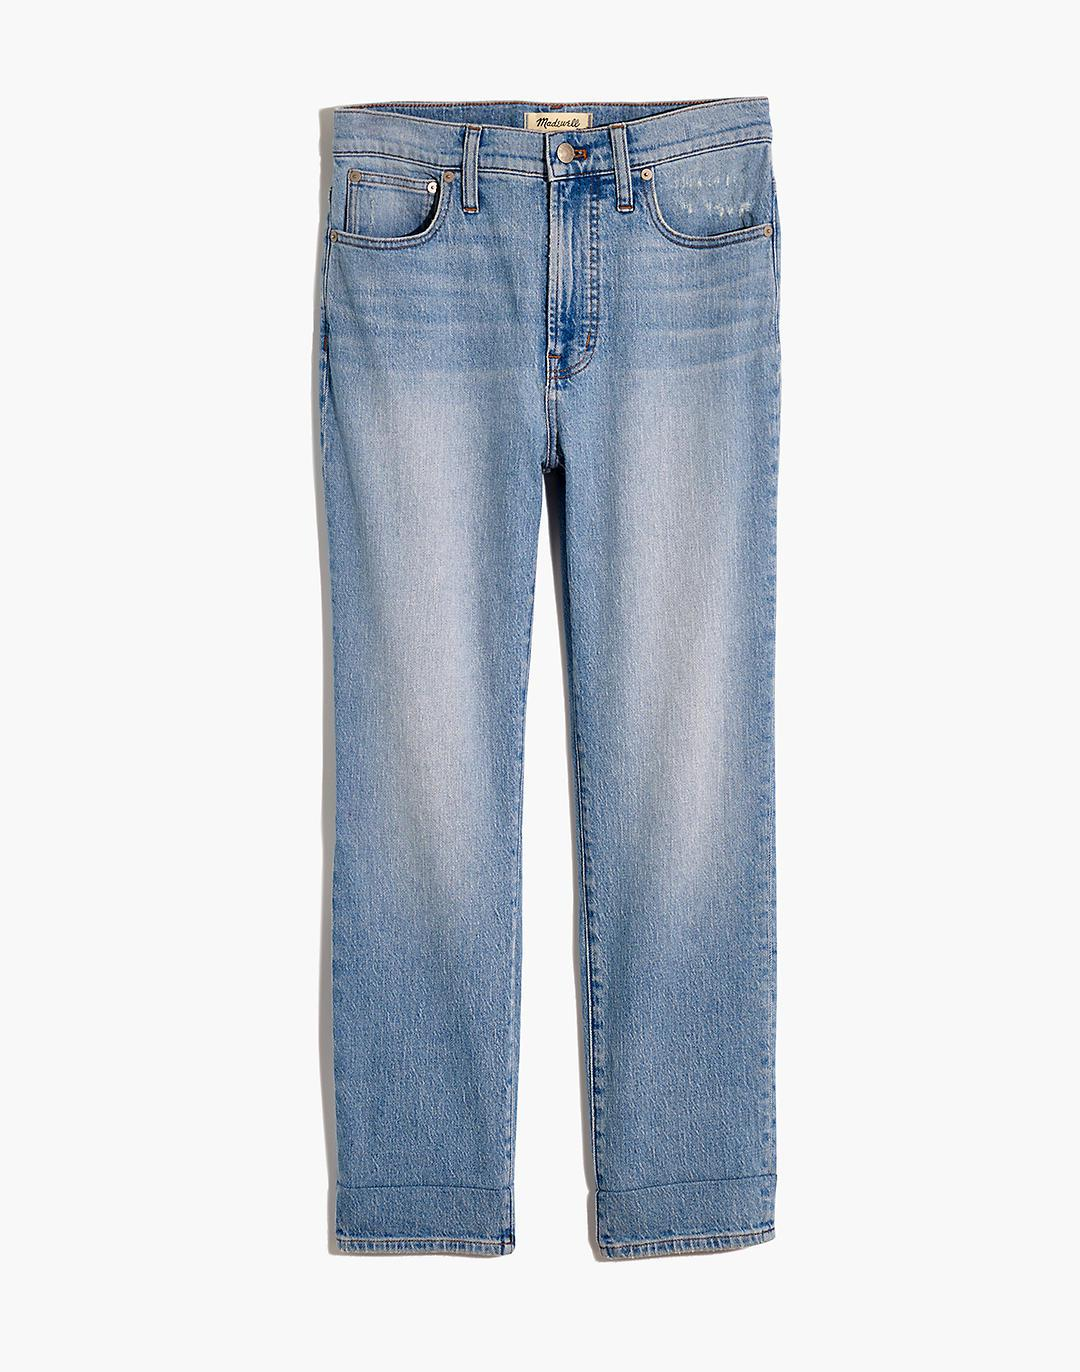 The Perfect Vintage Jean in Fiore Wash 5